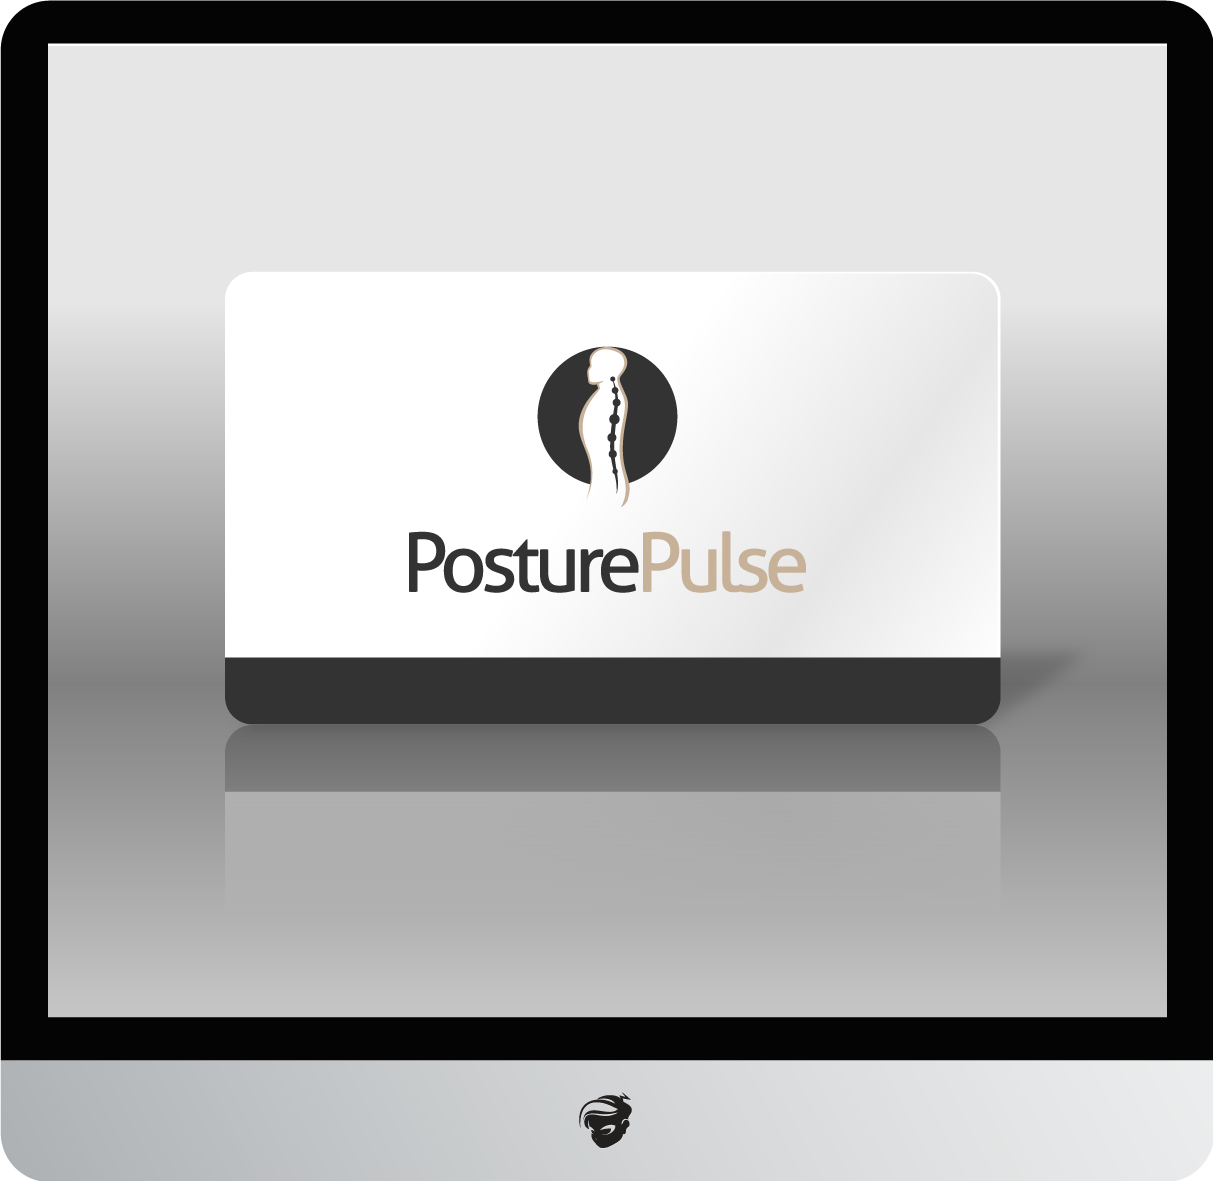 Logo Design by zesthar - Entry No. 106 in the Logo Design Contest Unique Logo Design Wanted for PosturePulse.